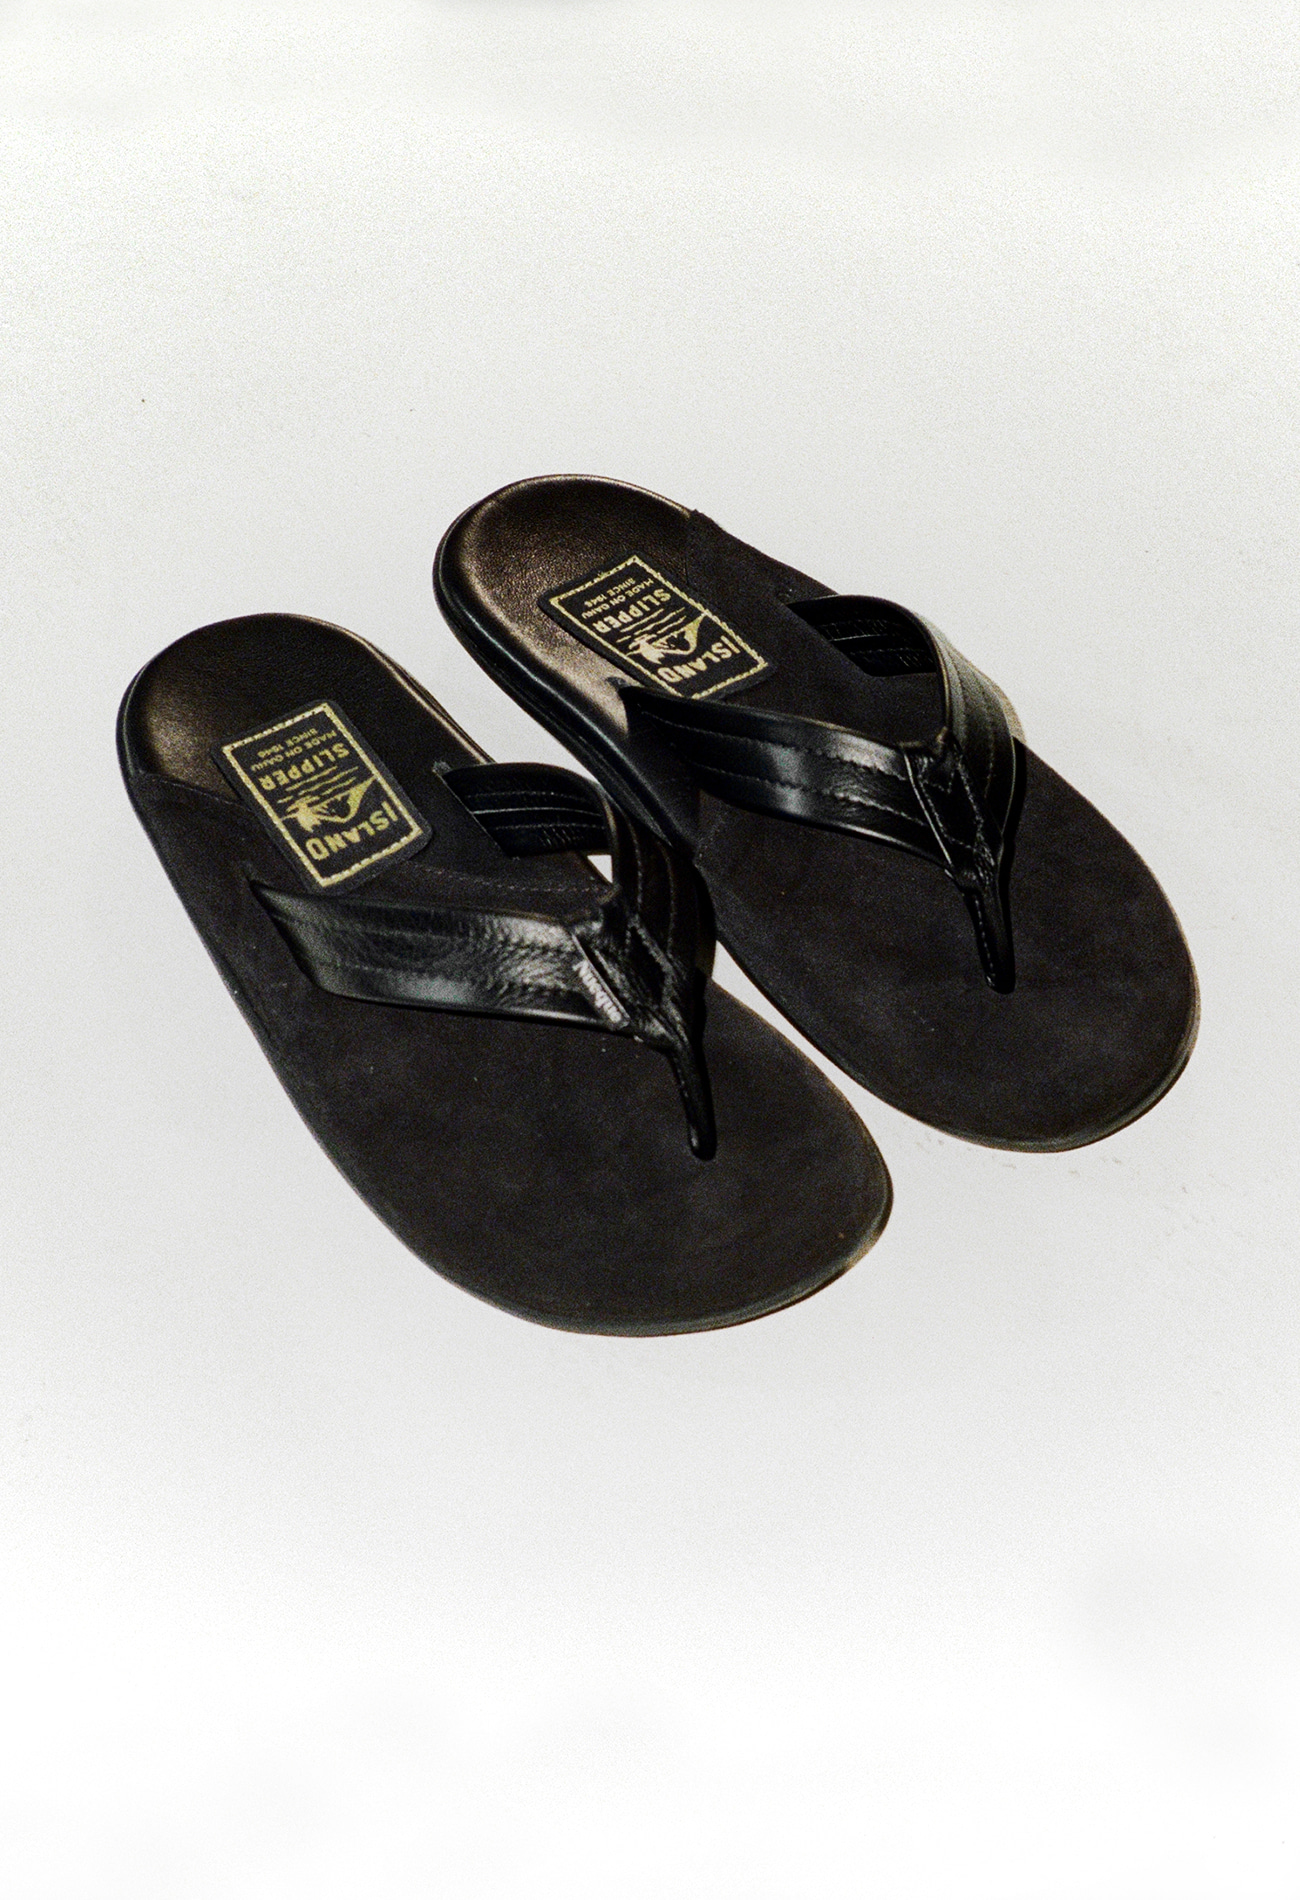 [Nueque X Island Slipper] flip-flop Black